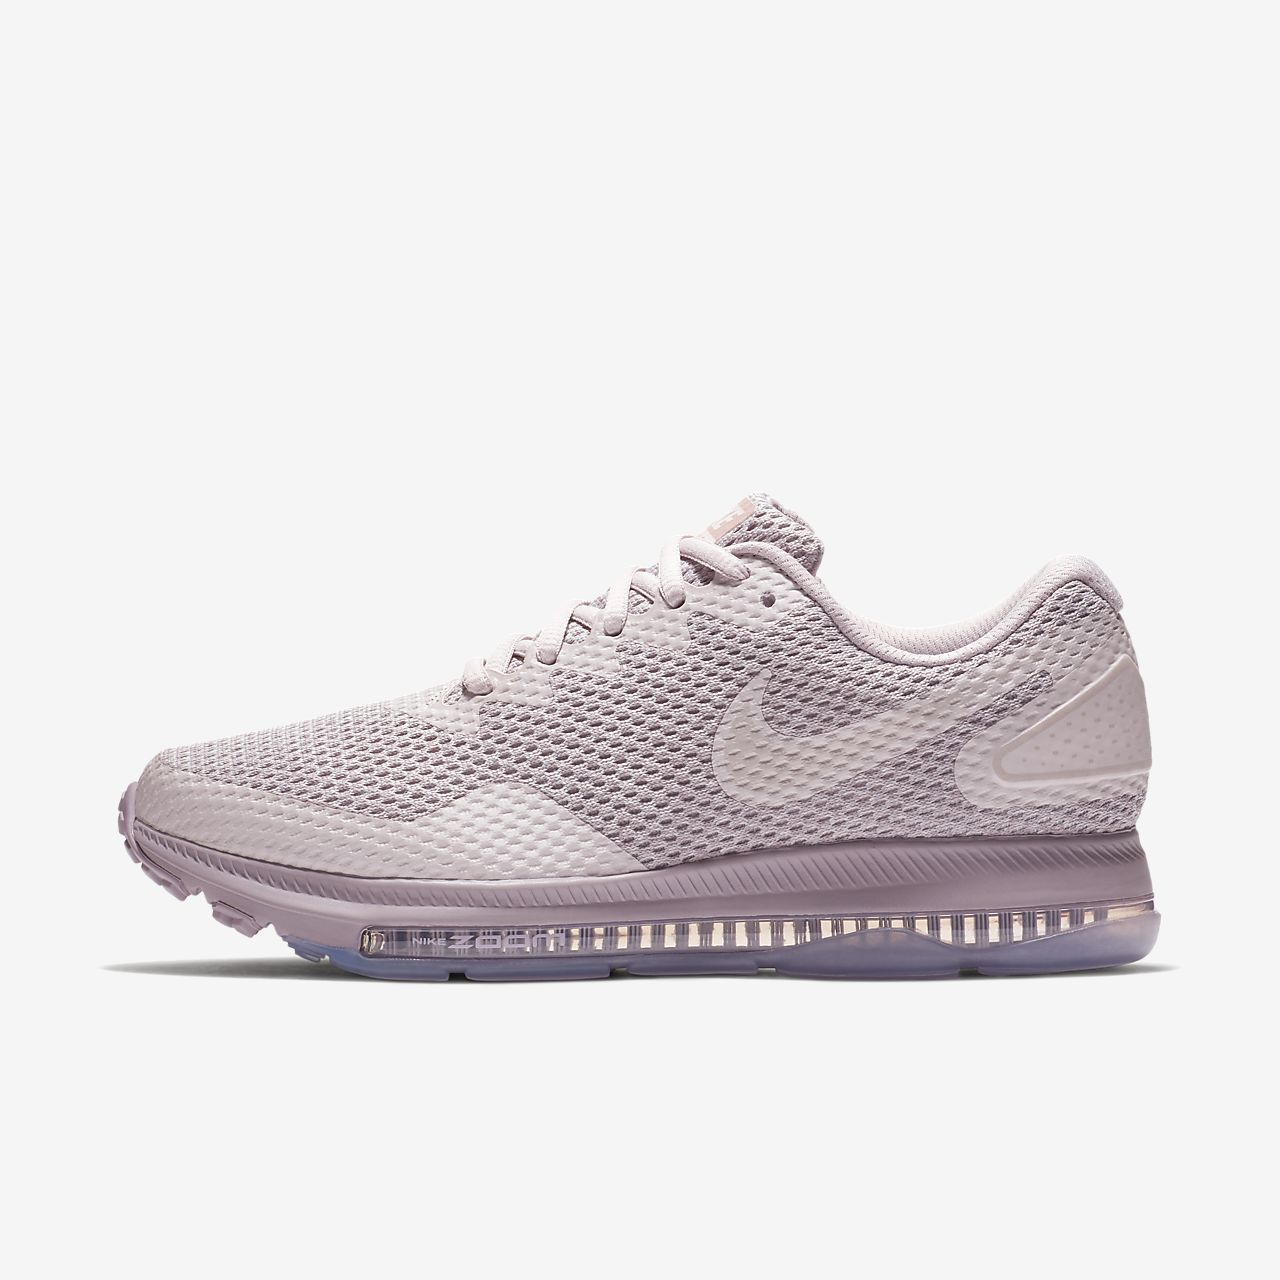 Nike Zoom All Out Low 2 Womens Running Shoe